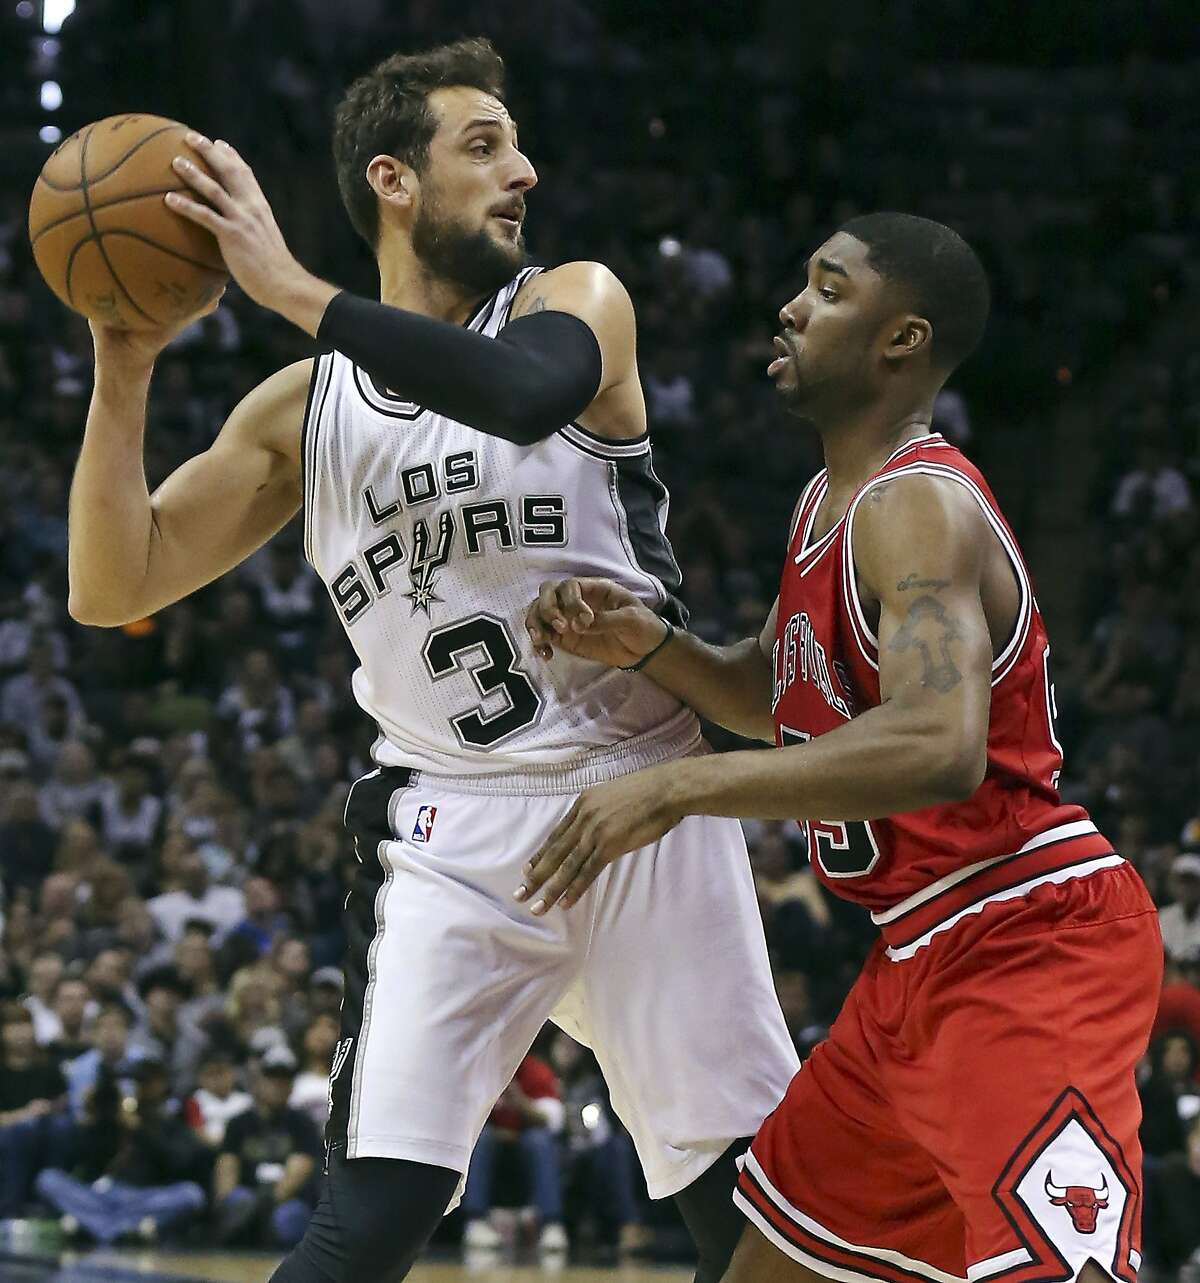 San Antonio Spurs' Marco Belinelli looks to pass around Chicago Bulls' E'Twaun Moore during second half action Sunday March 8, 2015 at the AT&T Center. The Spurs won 116-105.